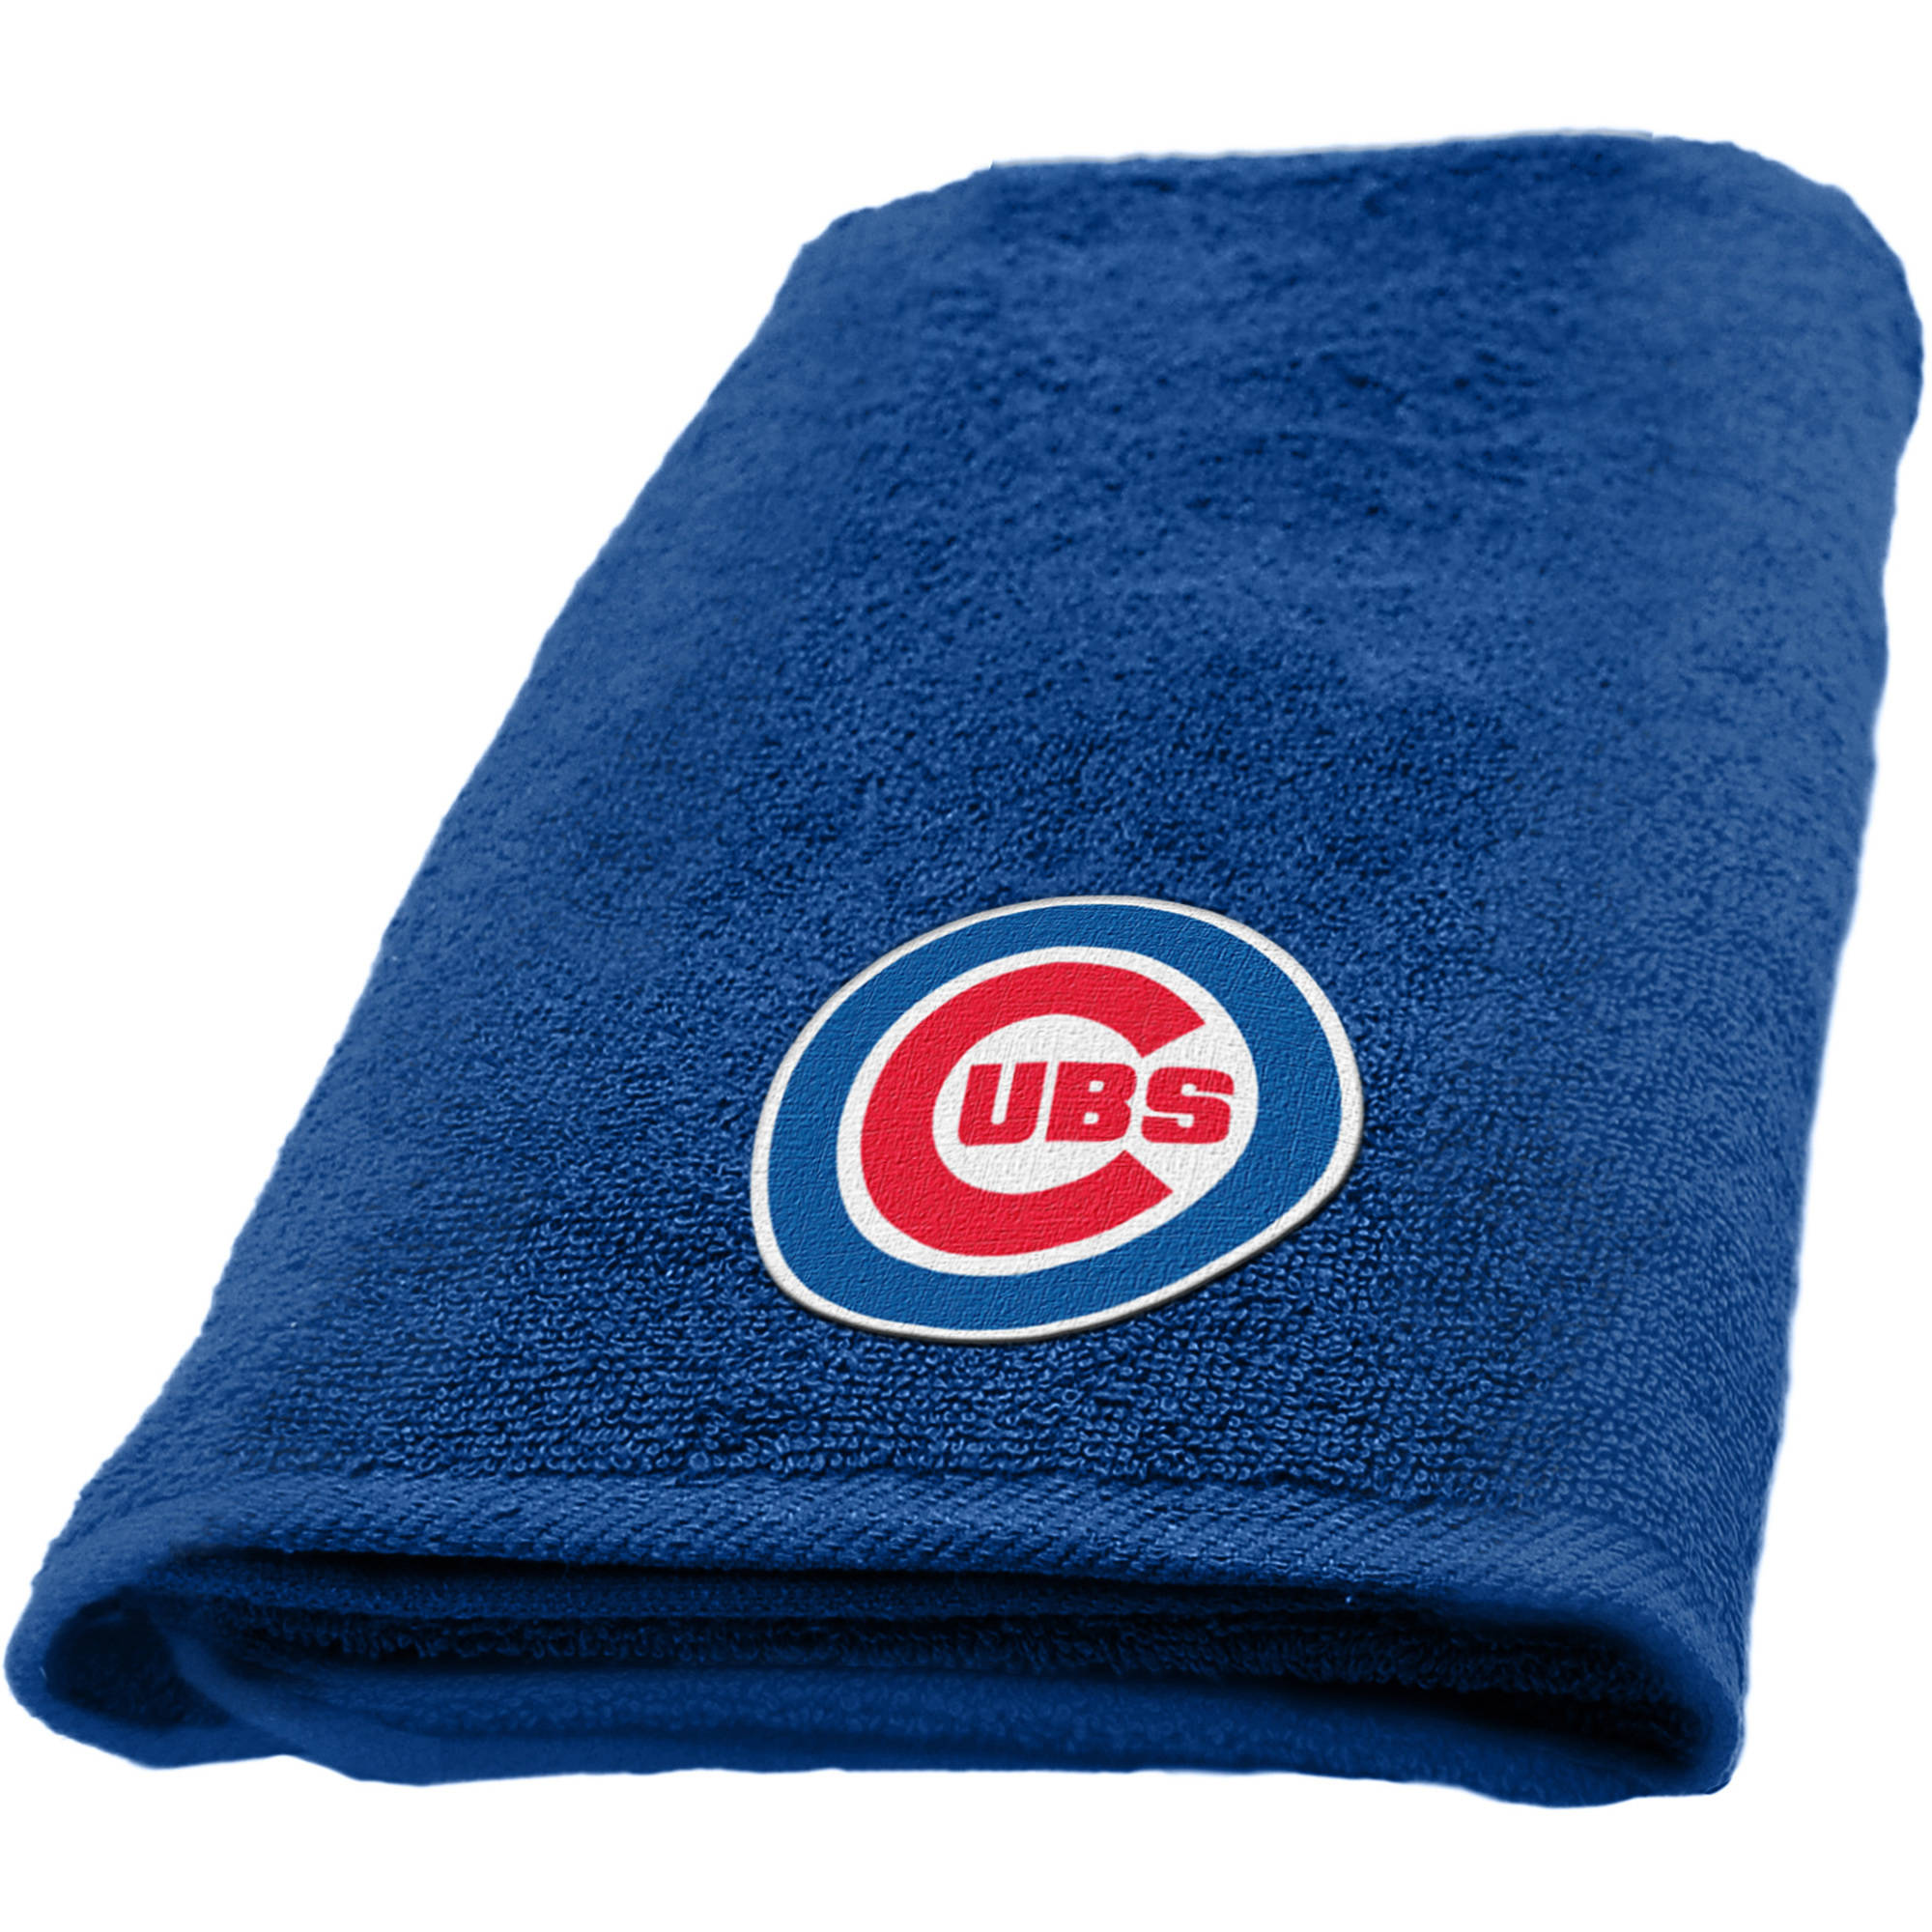 "MLB Chicago Cubs 15""x26"" Applique Hand Towel"